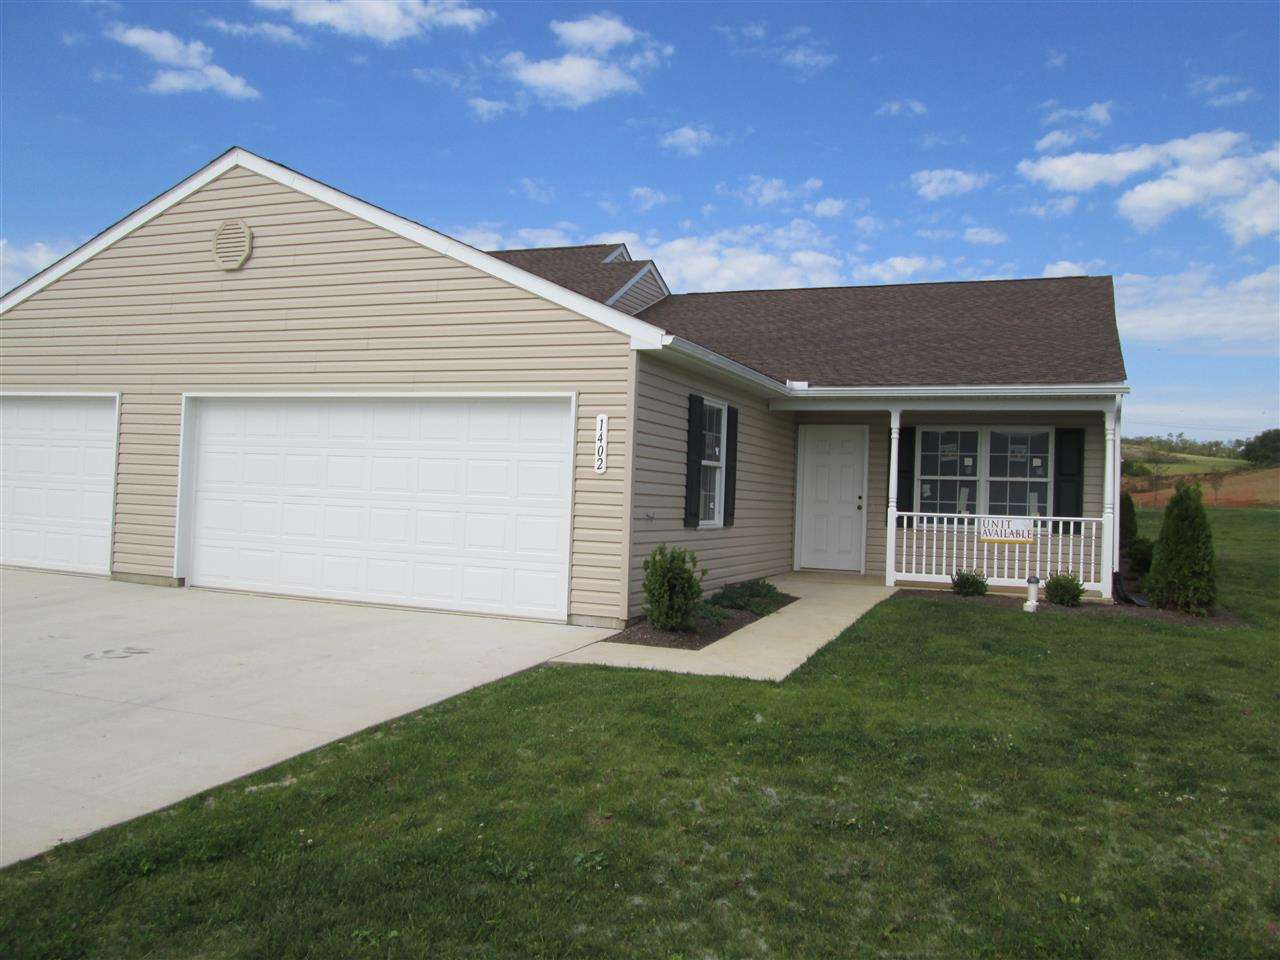 1402 Chami Dr, Spring Grove, PA 17362